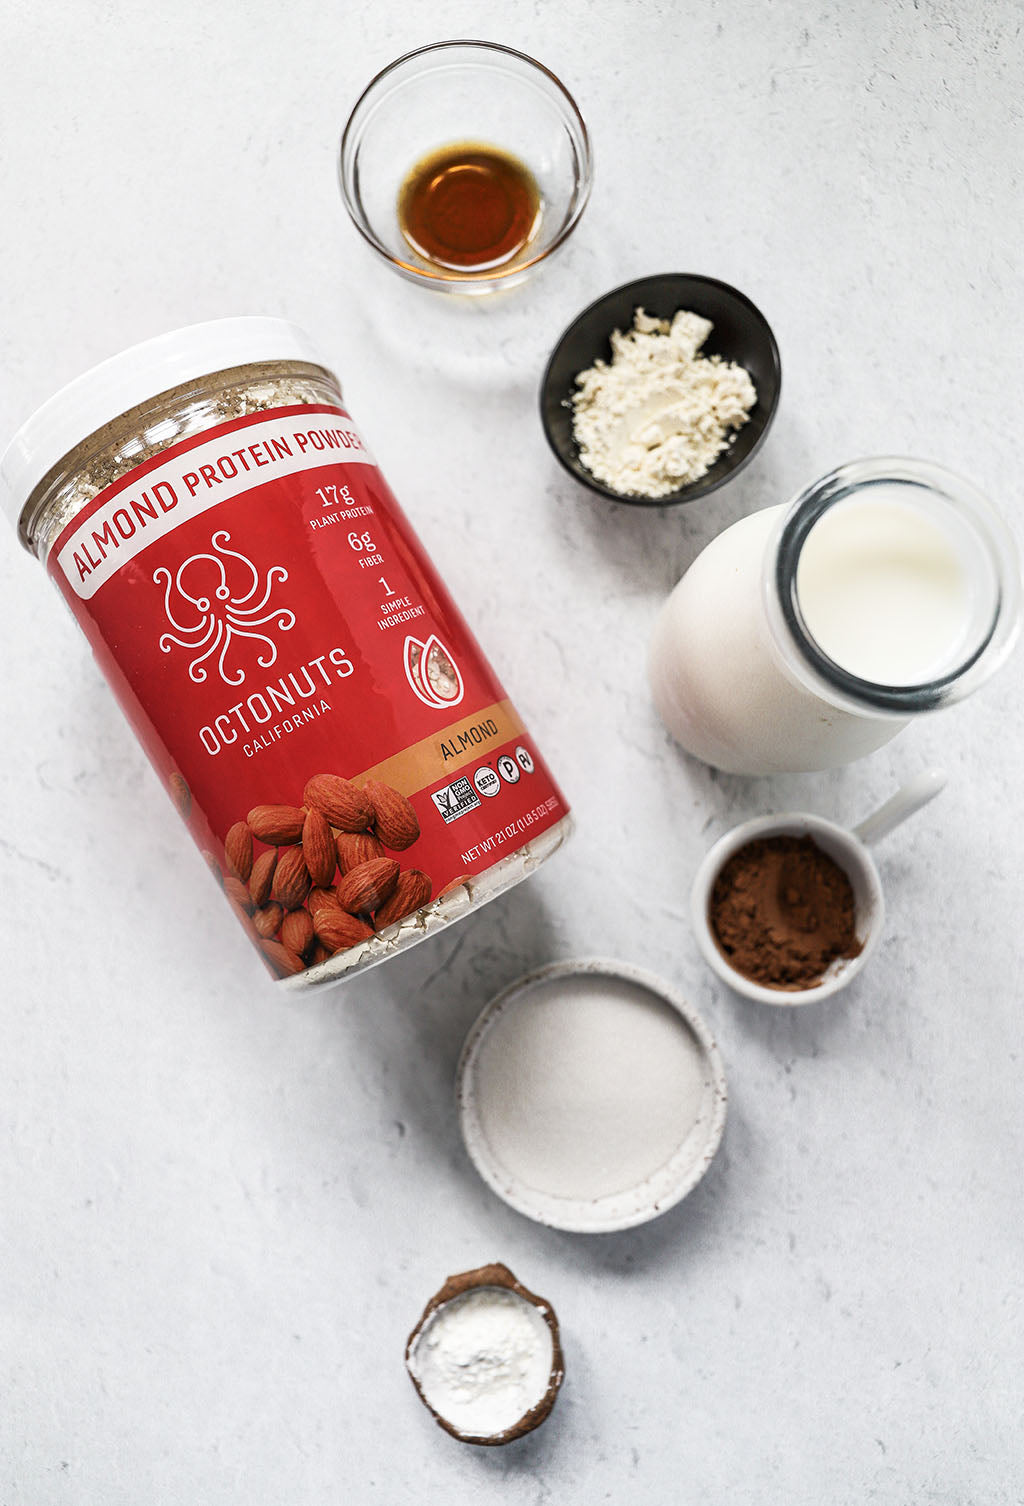 Creamy Hot Chocolate with Octonuts Almond Protein Powder